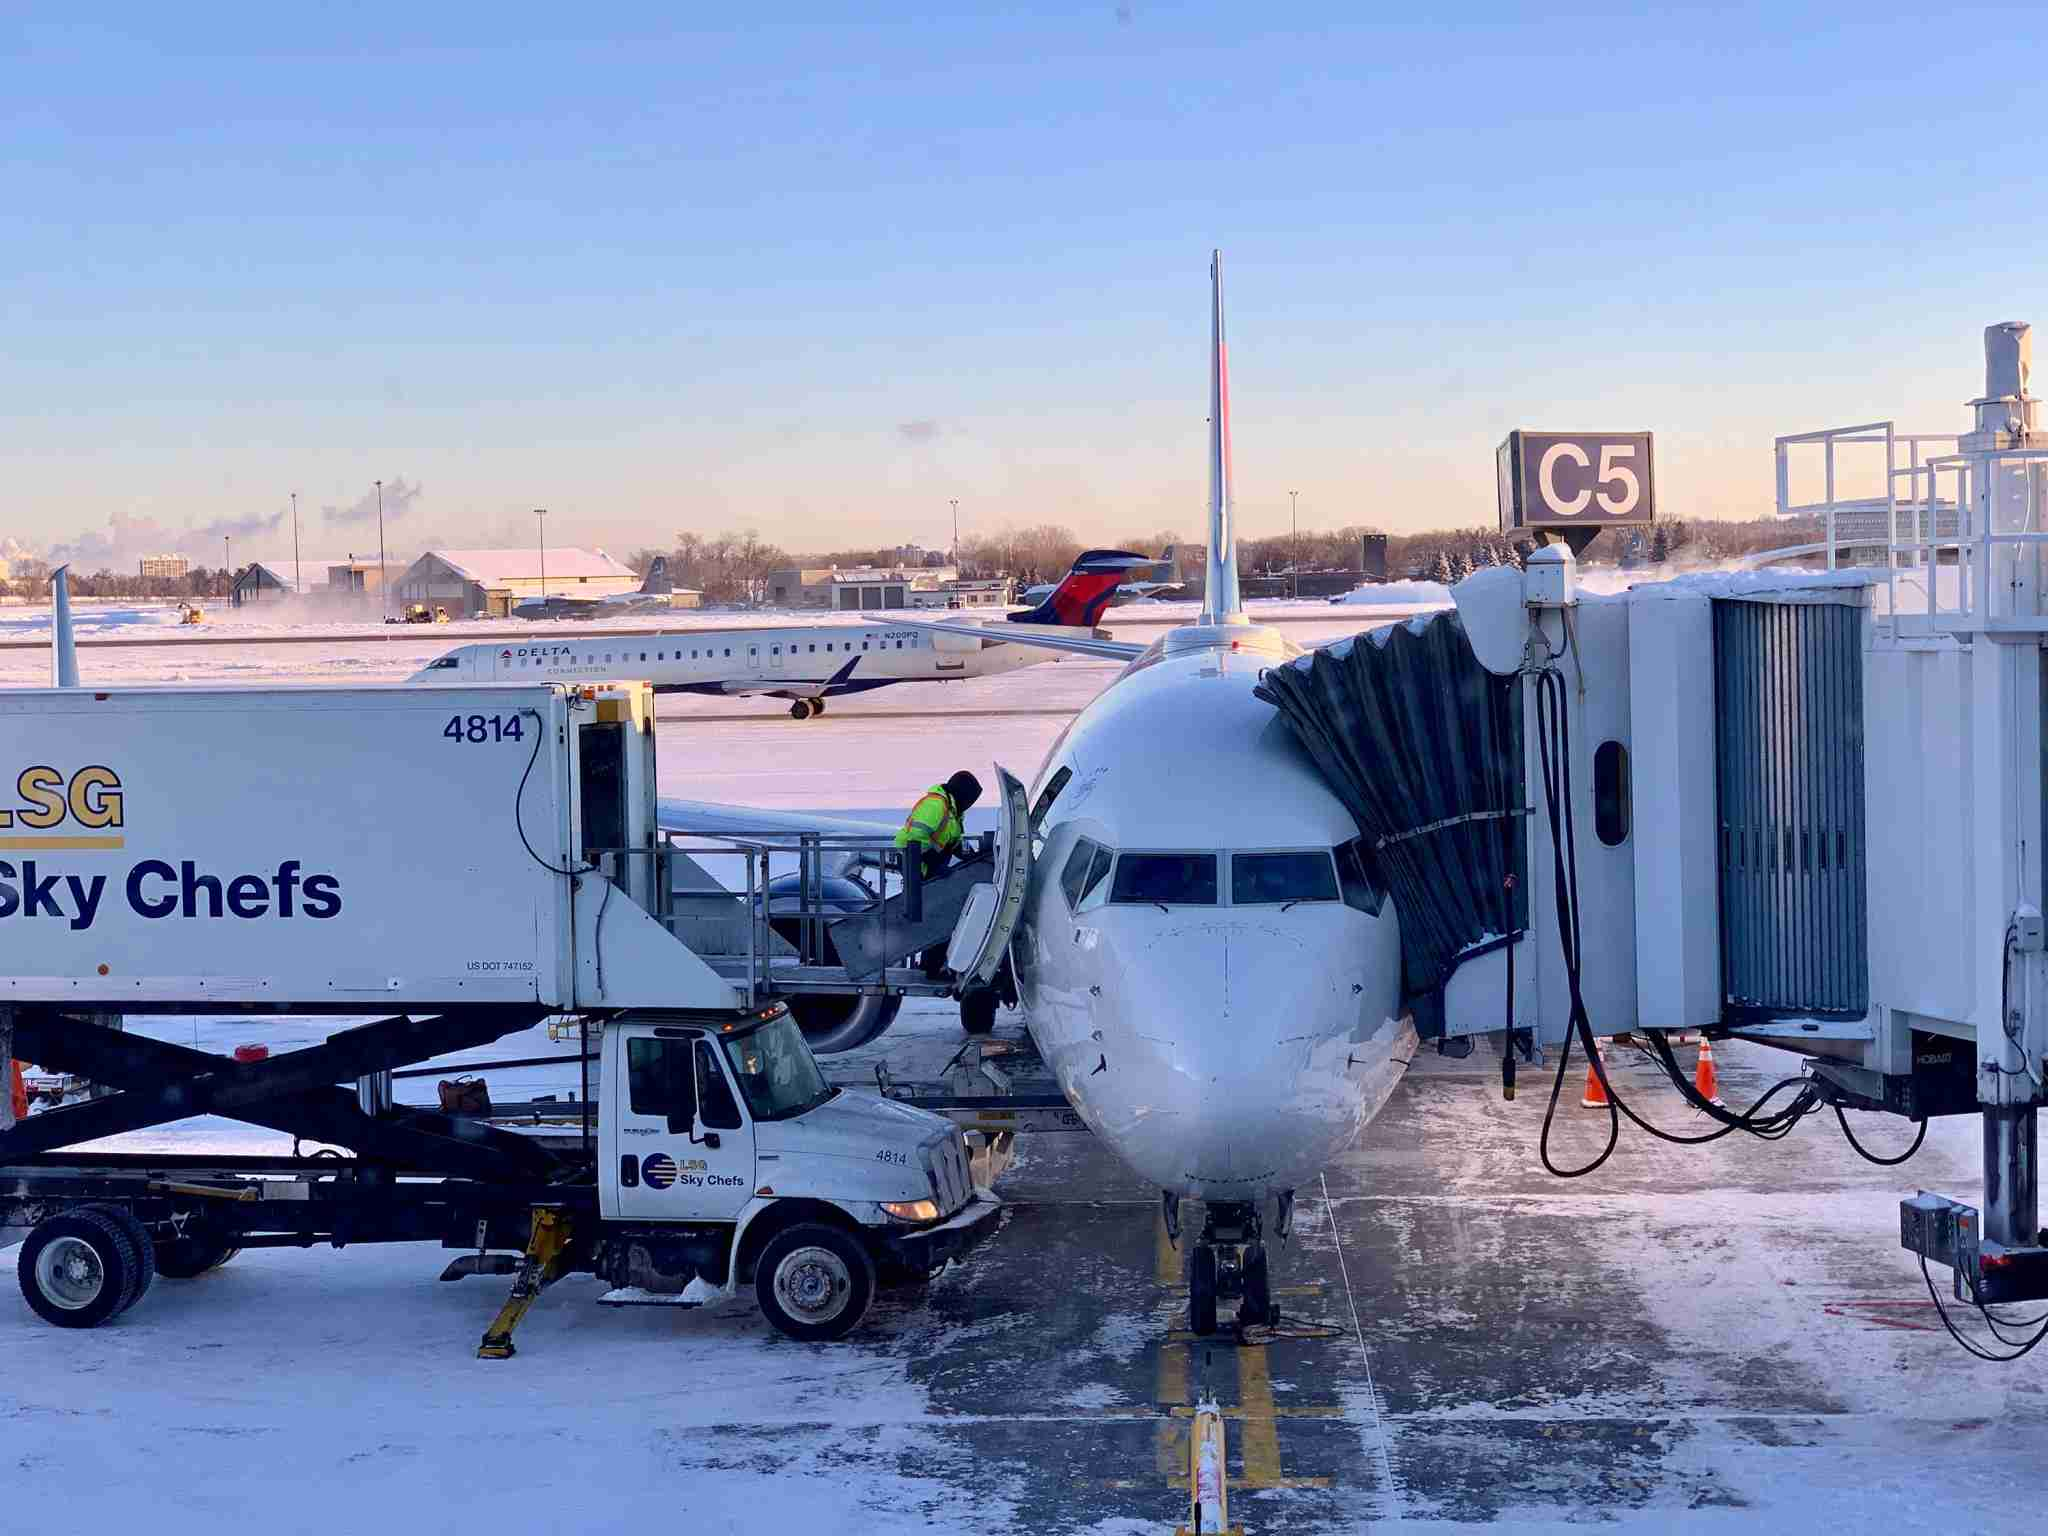 delta-airplane-jet-plane-msp-airport